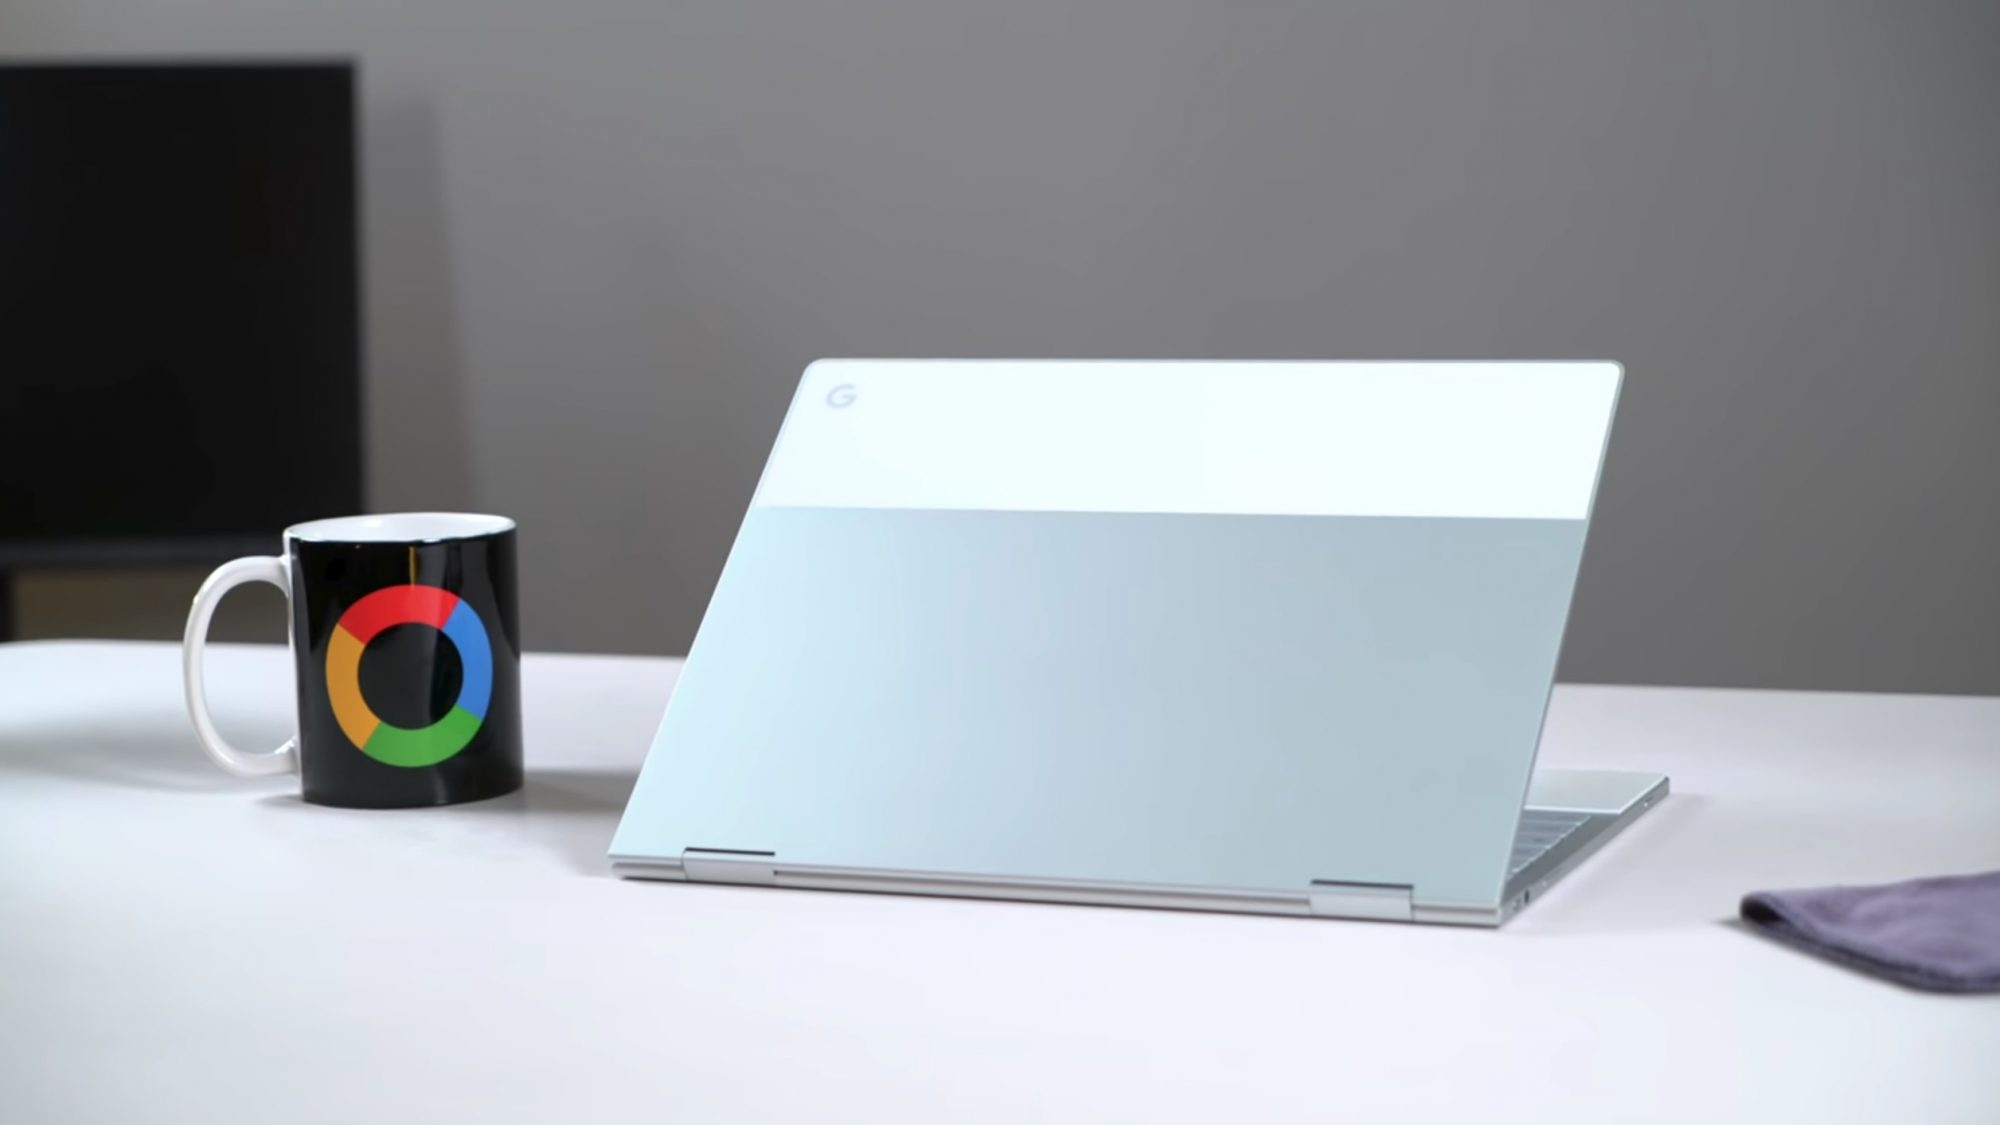 Deal Alert: $350 off the Core i7 Pixelbook and an EXCLUSIVE Chromebox deal